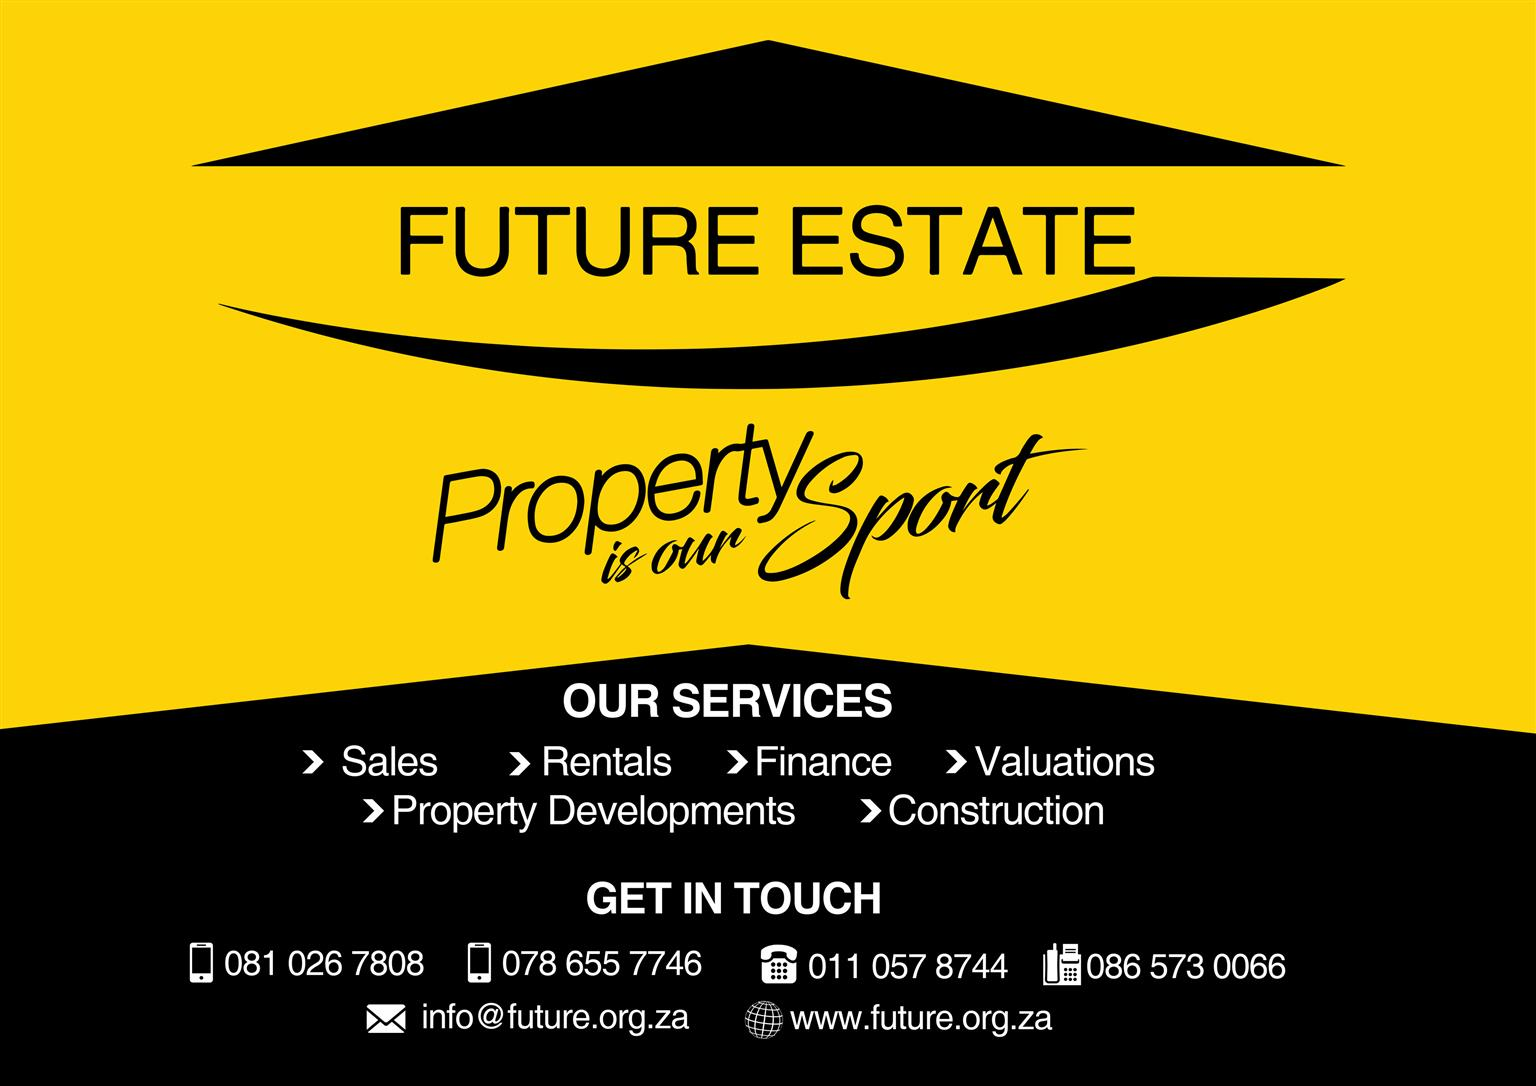 SELLING, RENTING, VALUATION IN TEMBISA? It's always a good idea to have an agent to work with you, we can guide you easily through the process